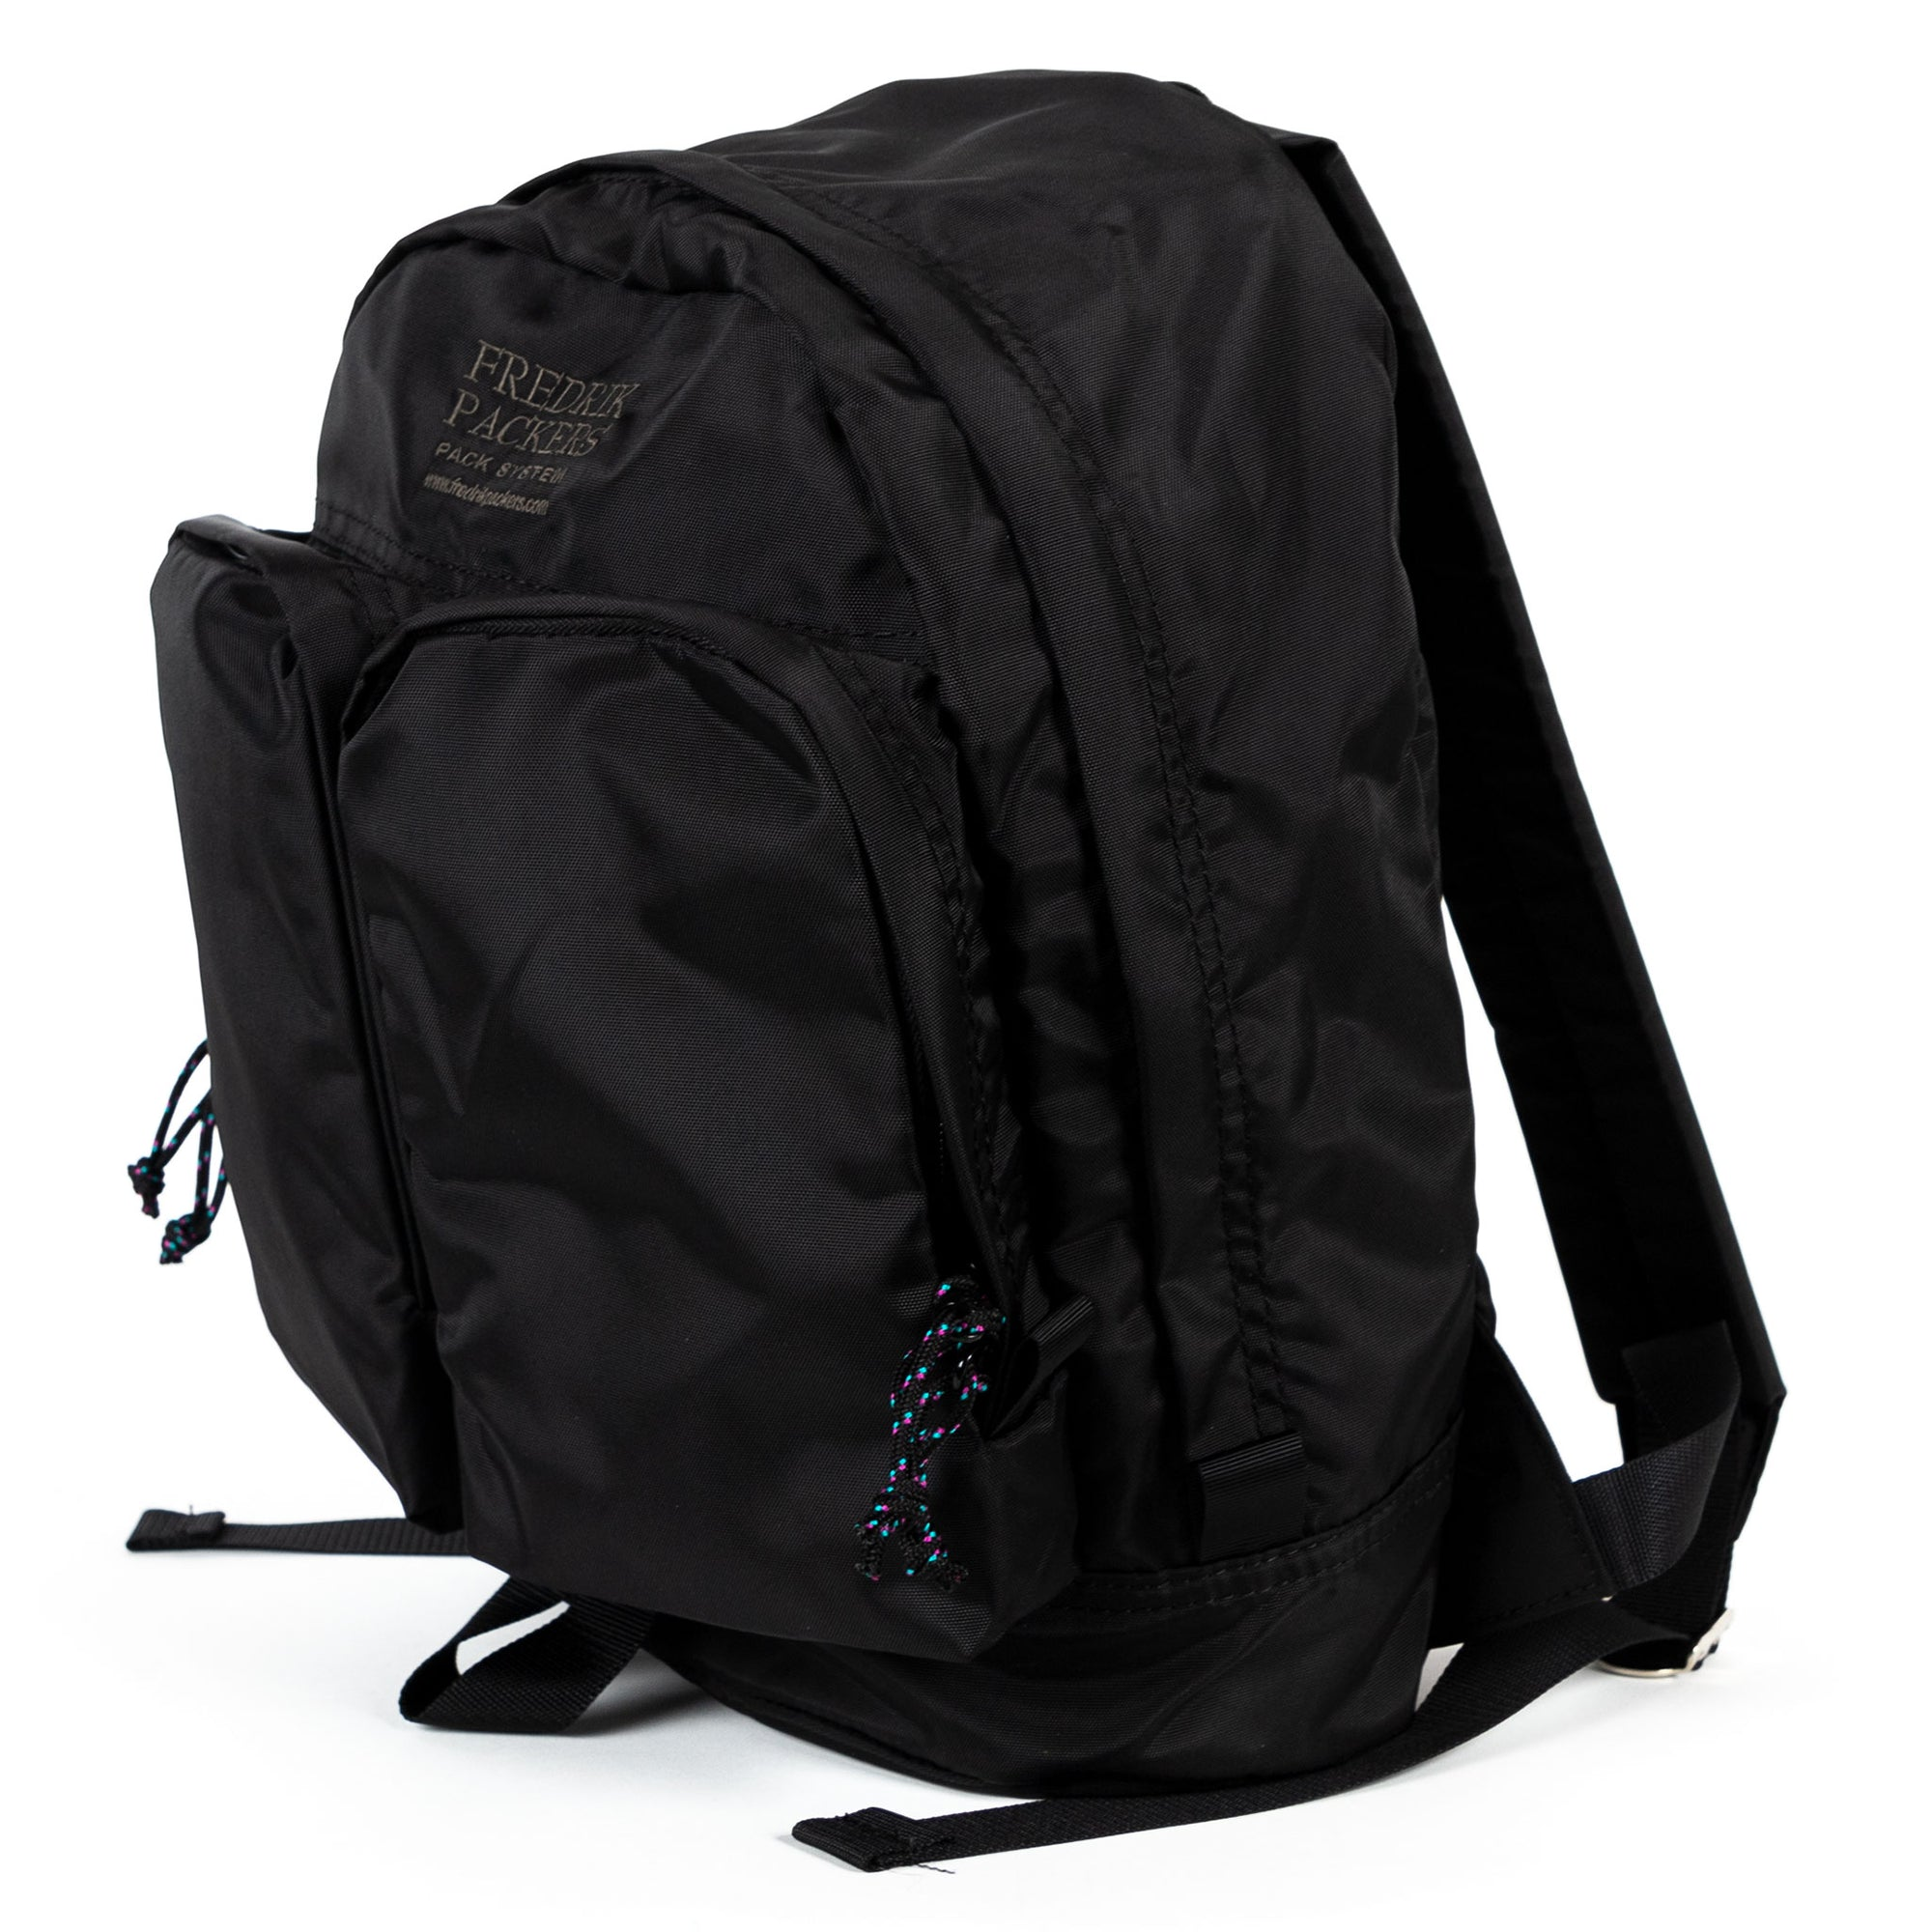 fredrik packers twins backpack in black